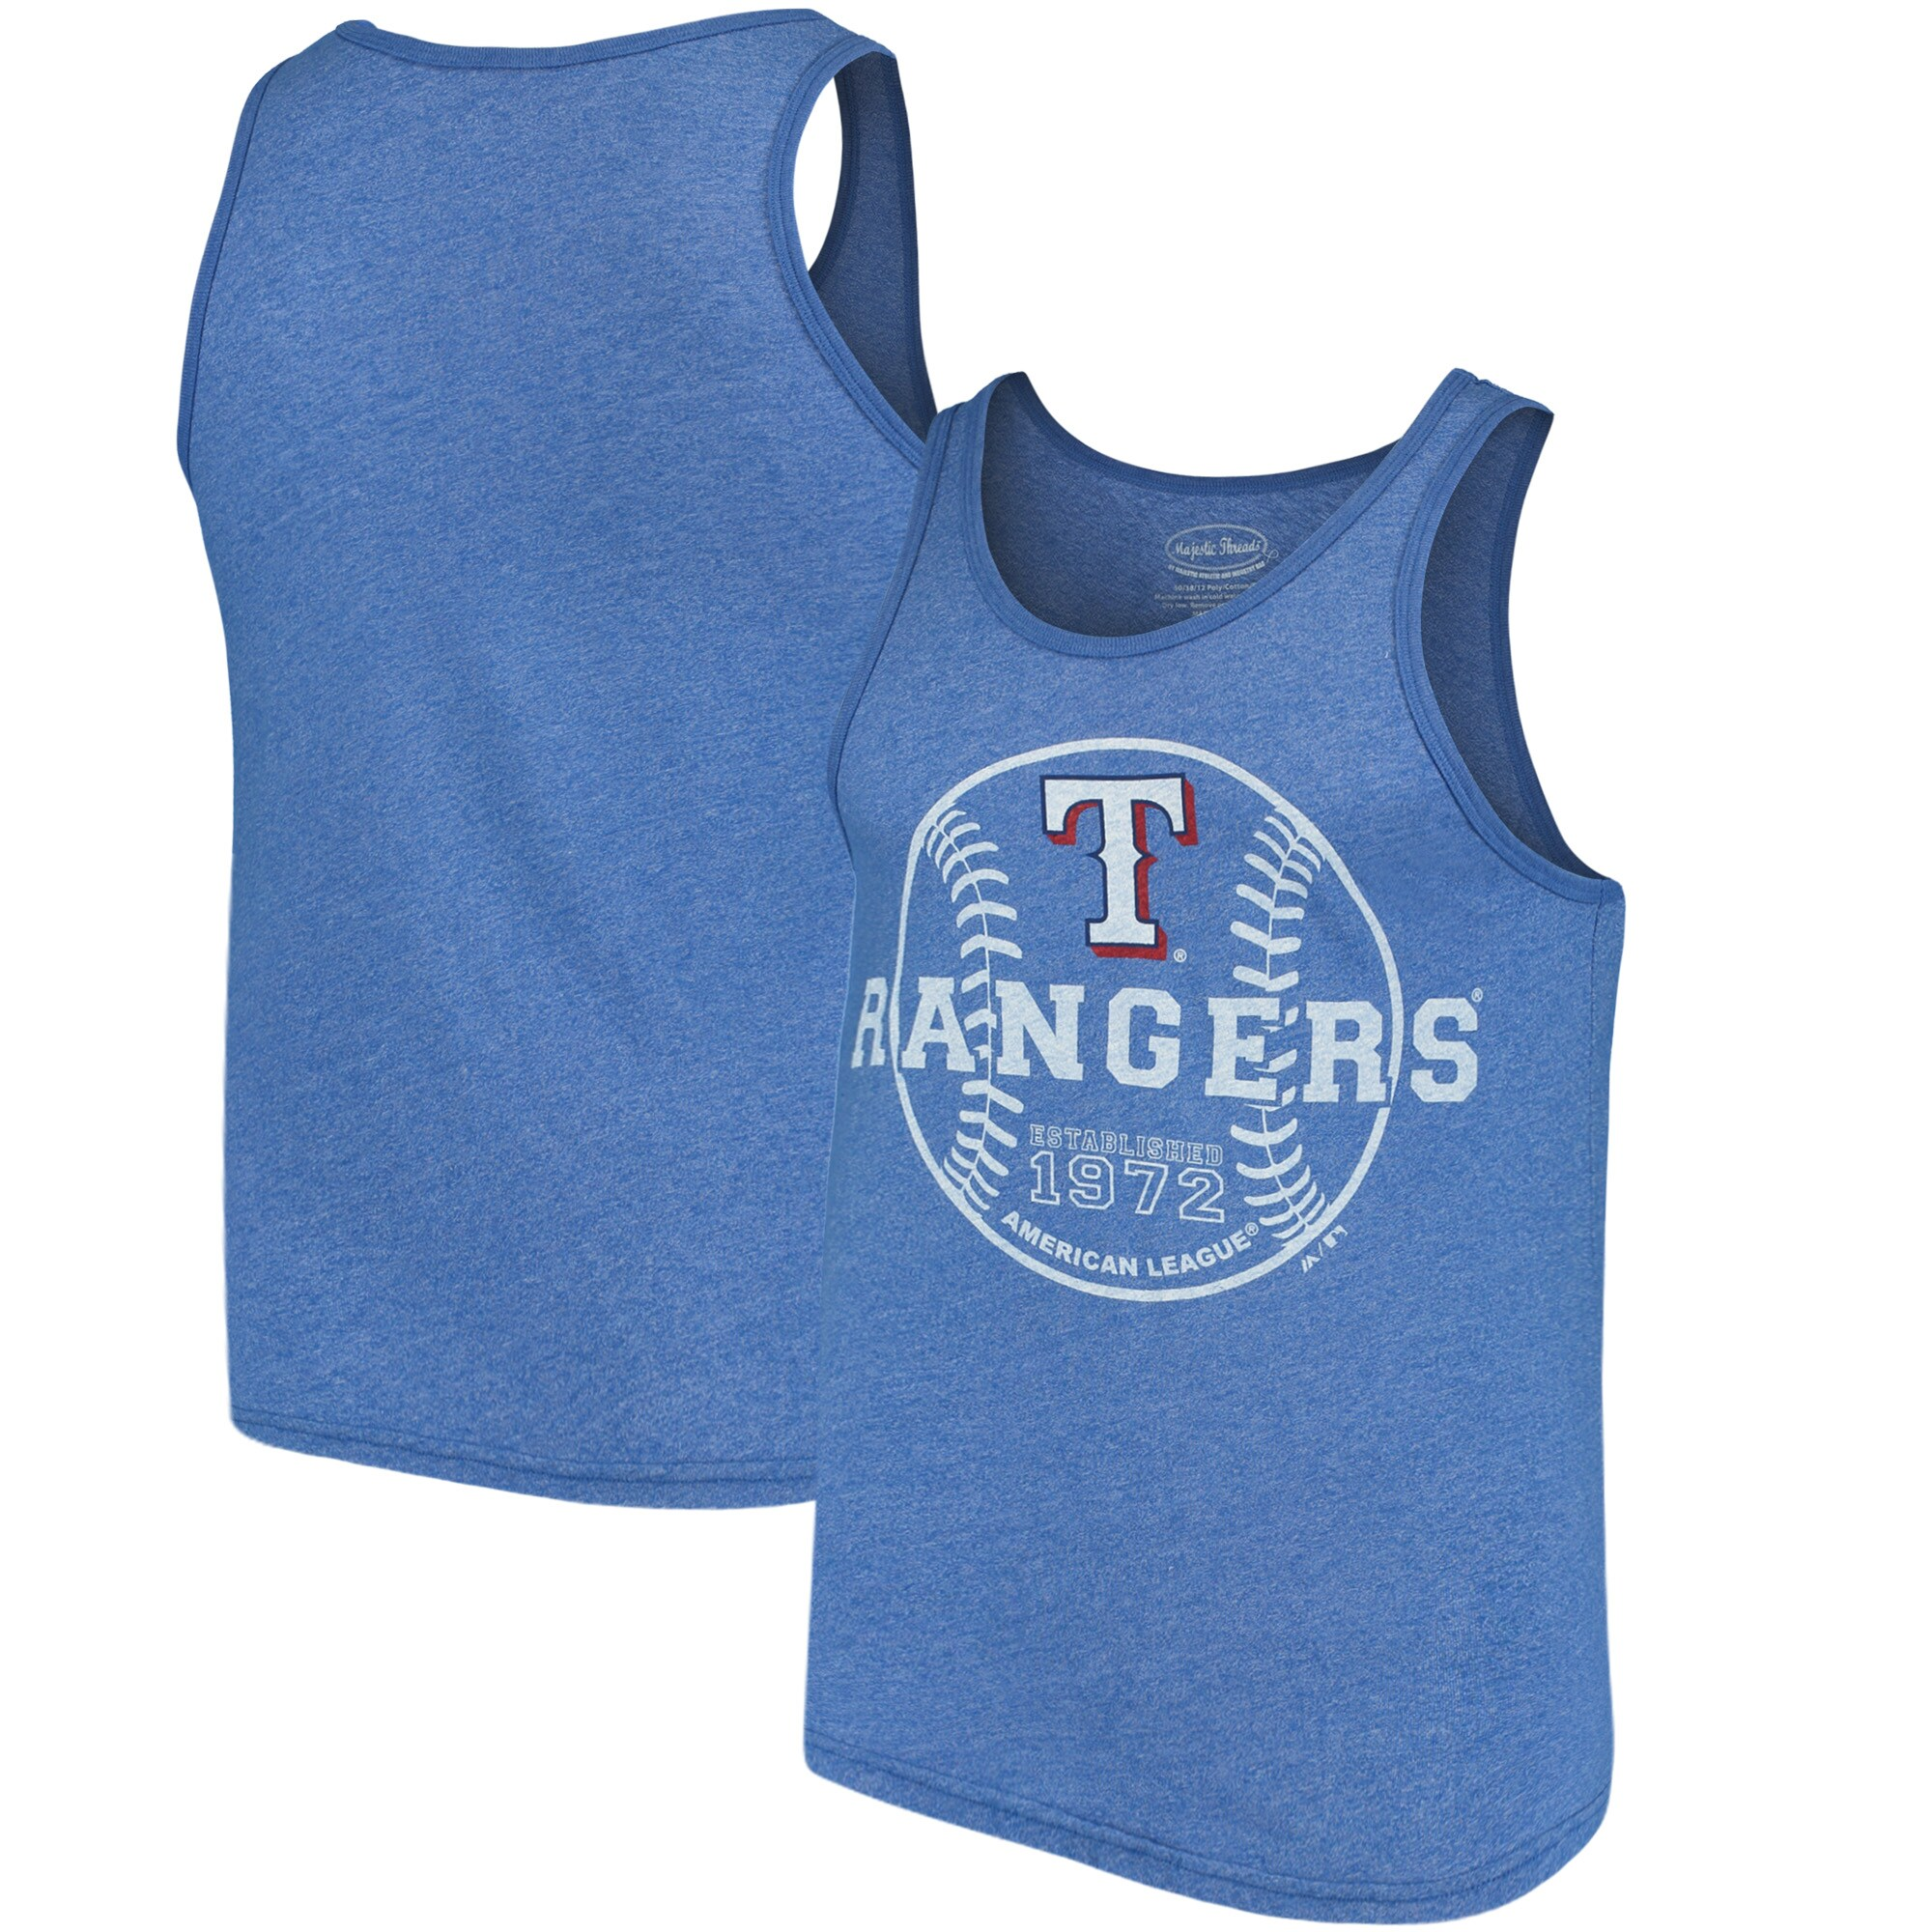 Texas Rangers Majestic Threads The Stretch Contrast Tri-Blend Tank Top - Heathered Royal